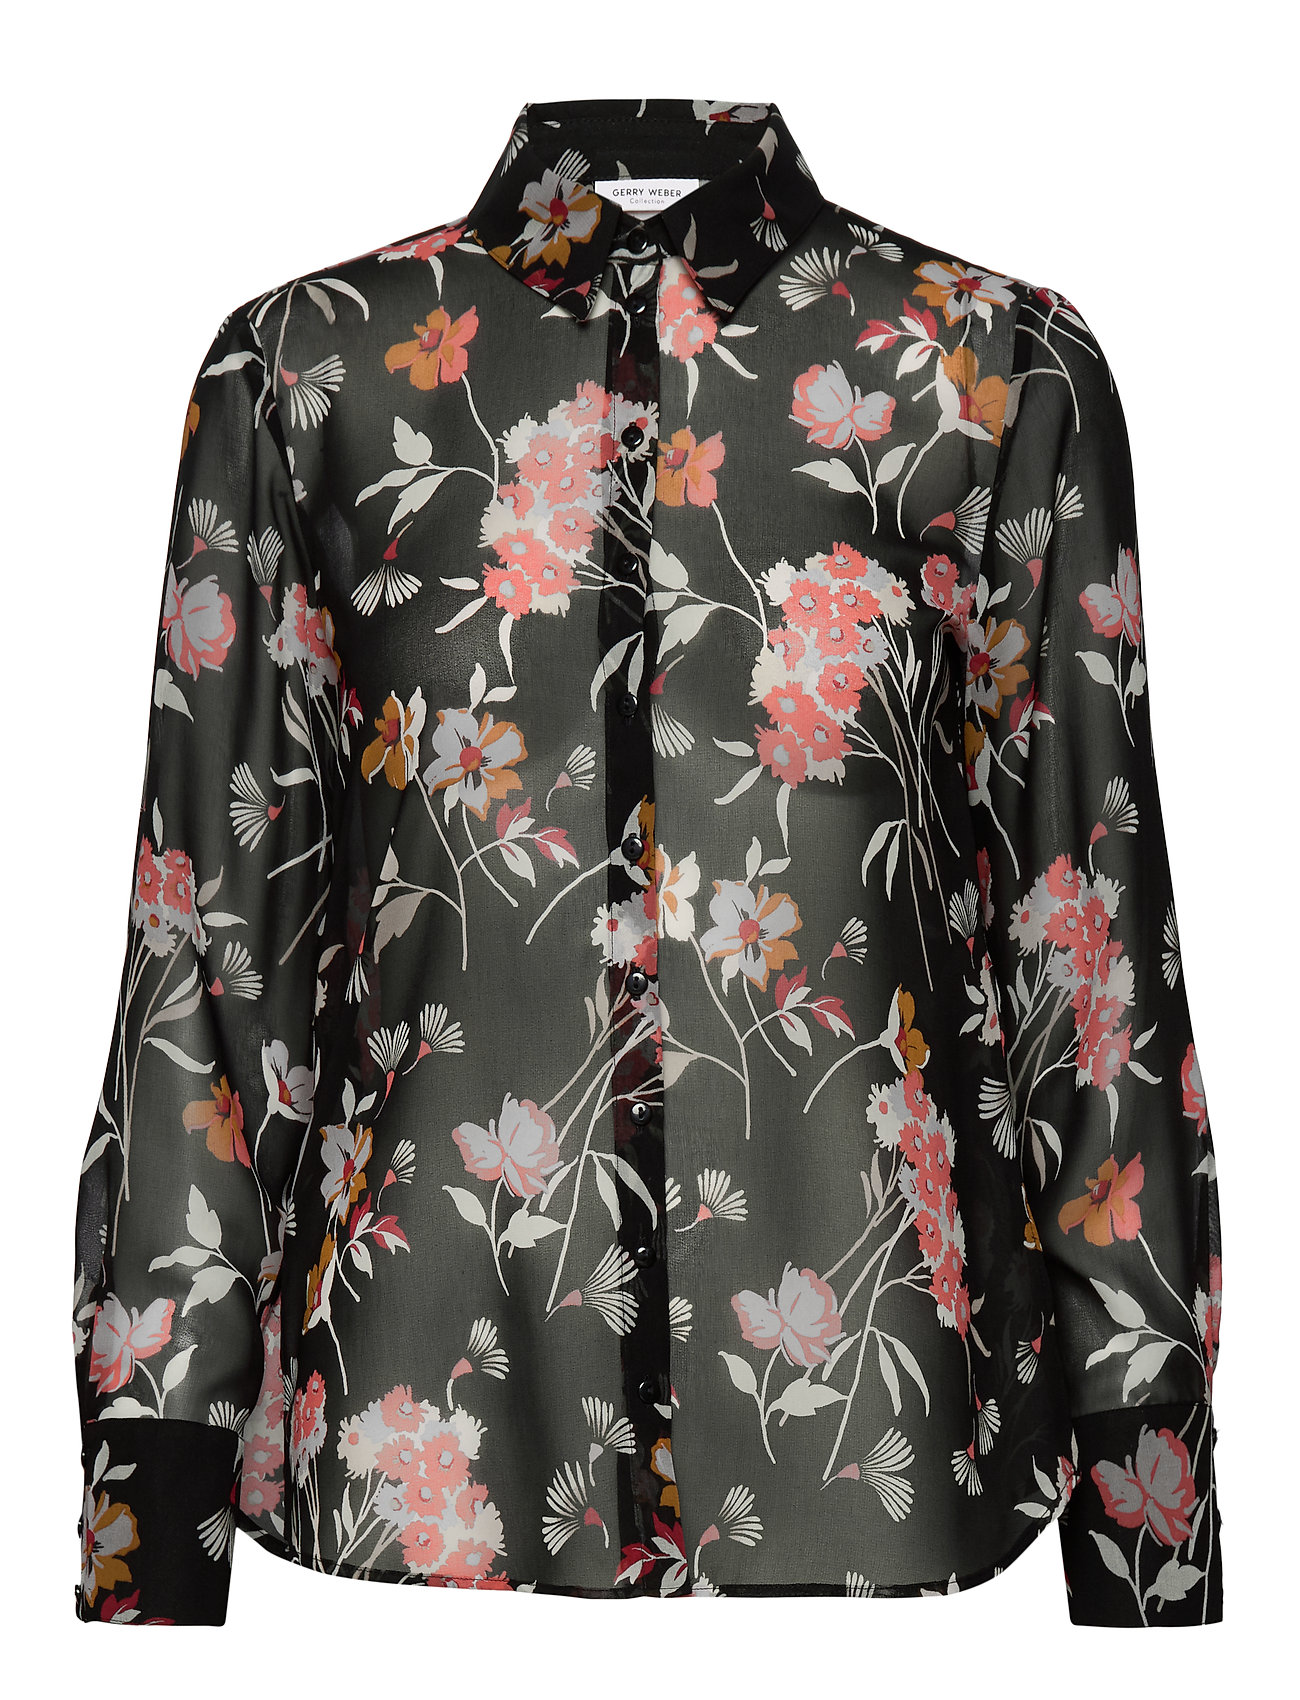 Gerry Weber BLOUSE LONG-SLEEVE - BLACKOFFWHITEDUSTYPINK PRINT